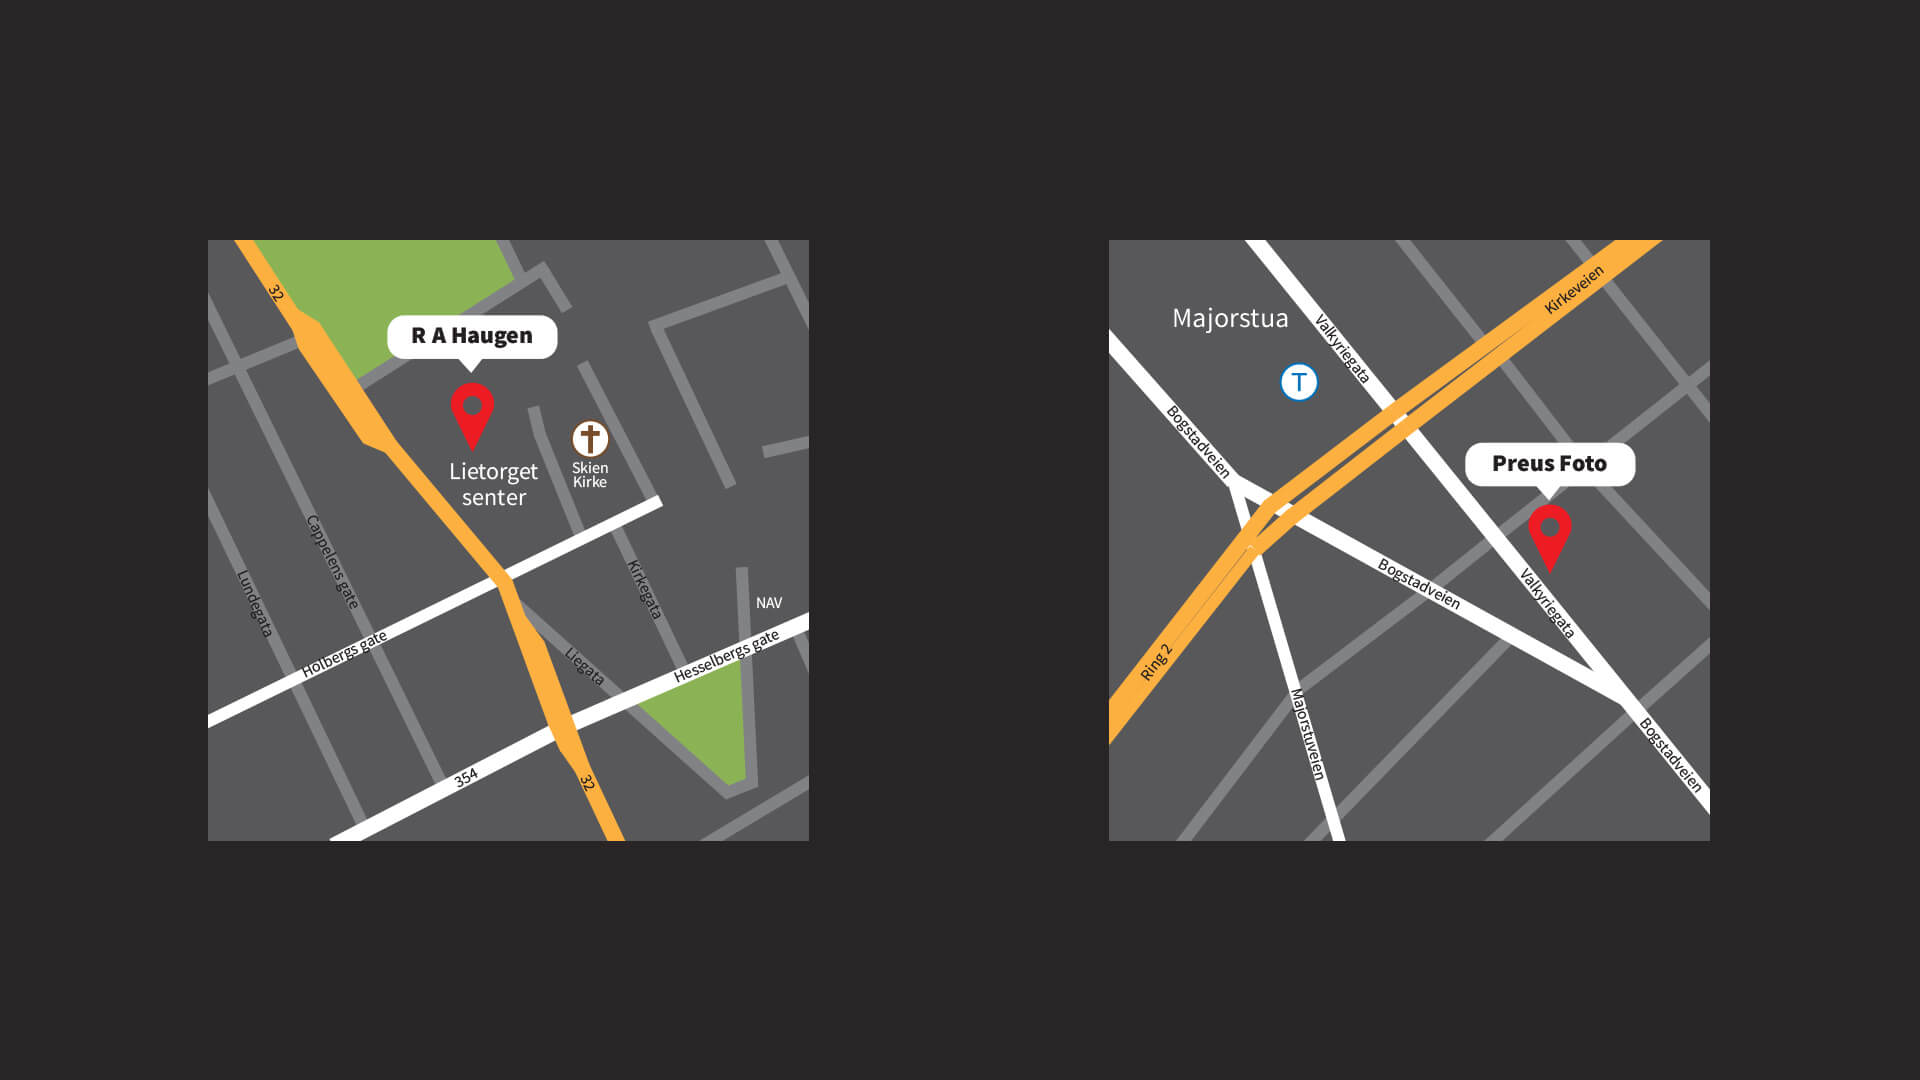 Maps designed to be copyright free and also mach the renewed exclusive brand look.